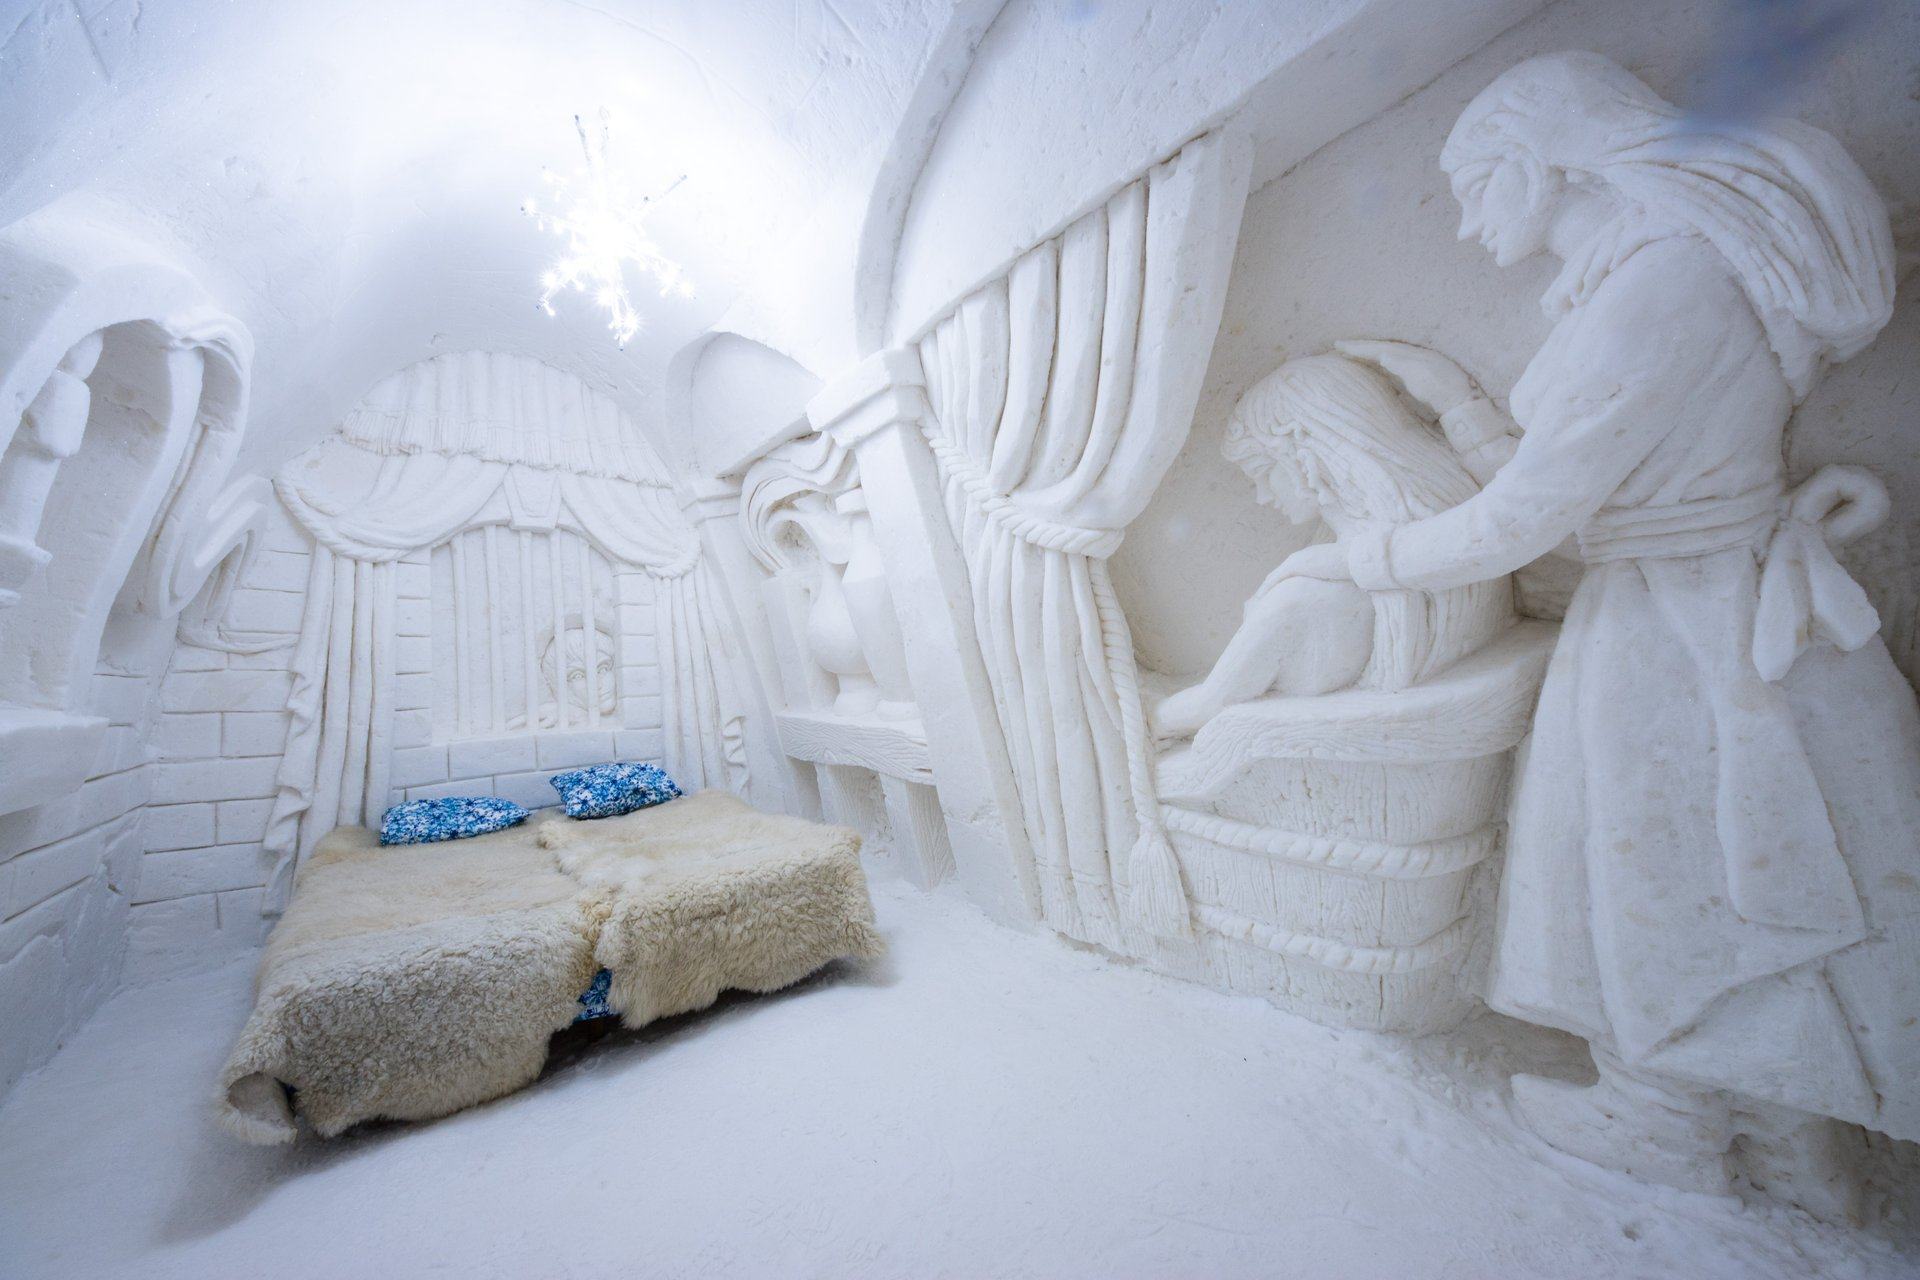 Snowcastle in Kemi 2019